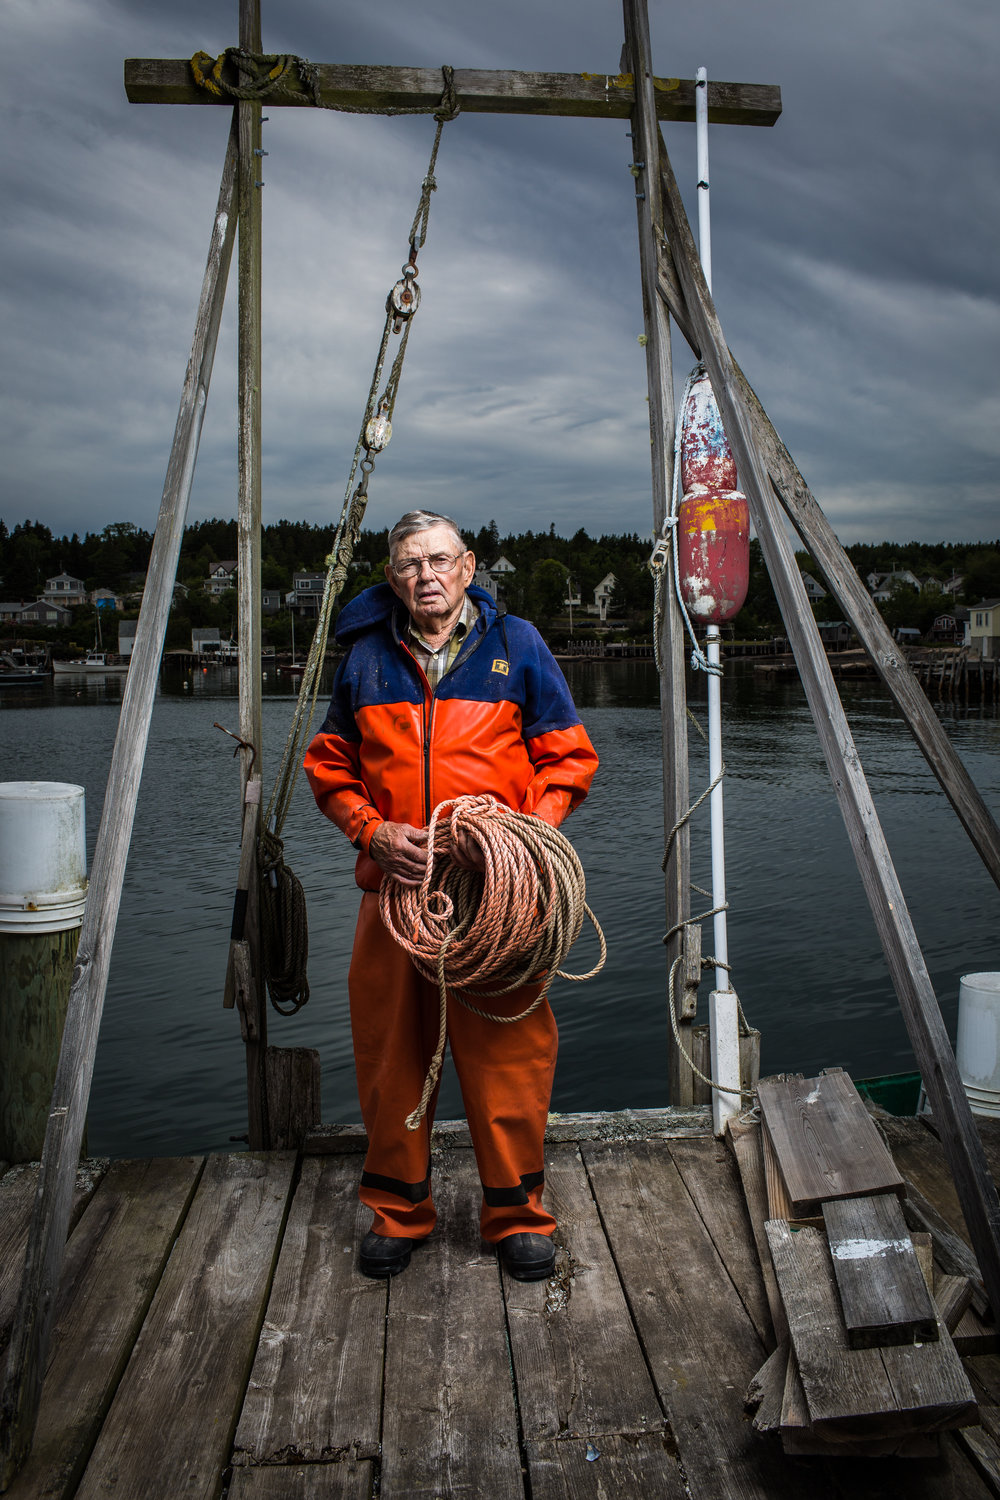 Andy Gove, an 88-year-old lobsterman from Stonington, Maine. Still actively out setting traps, Gove got his first lobster license in 1937. Gove has been working in the same harbor since he was a boy and his vast knowledge of the water and the region has earned him accolades in search and rescue operations when the Coast Guard asks for his help.